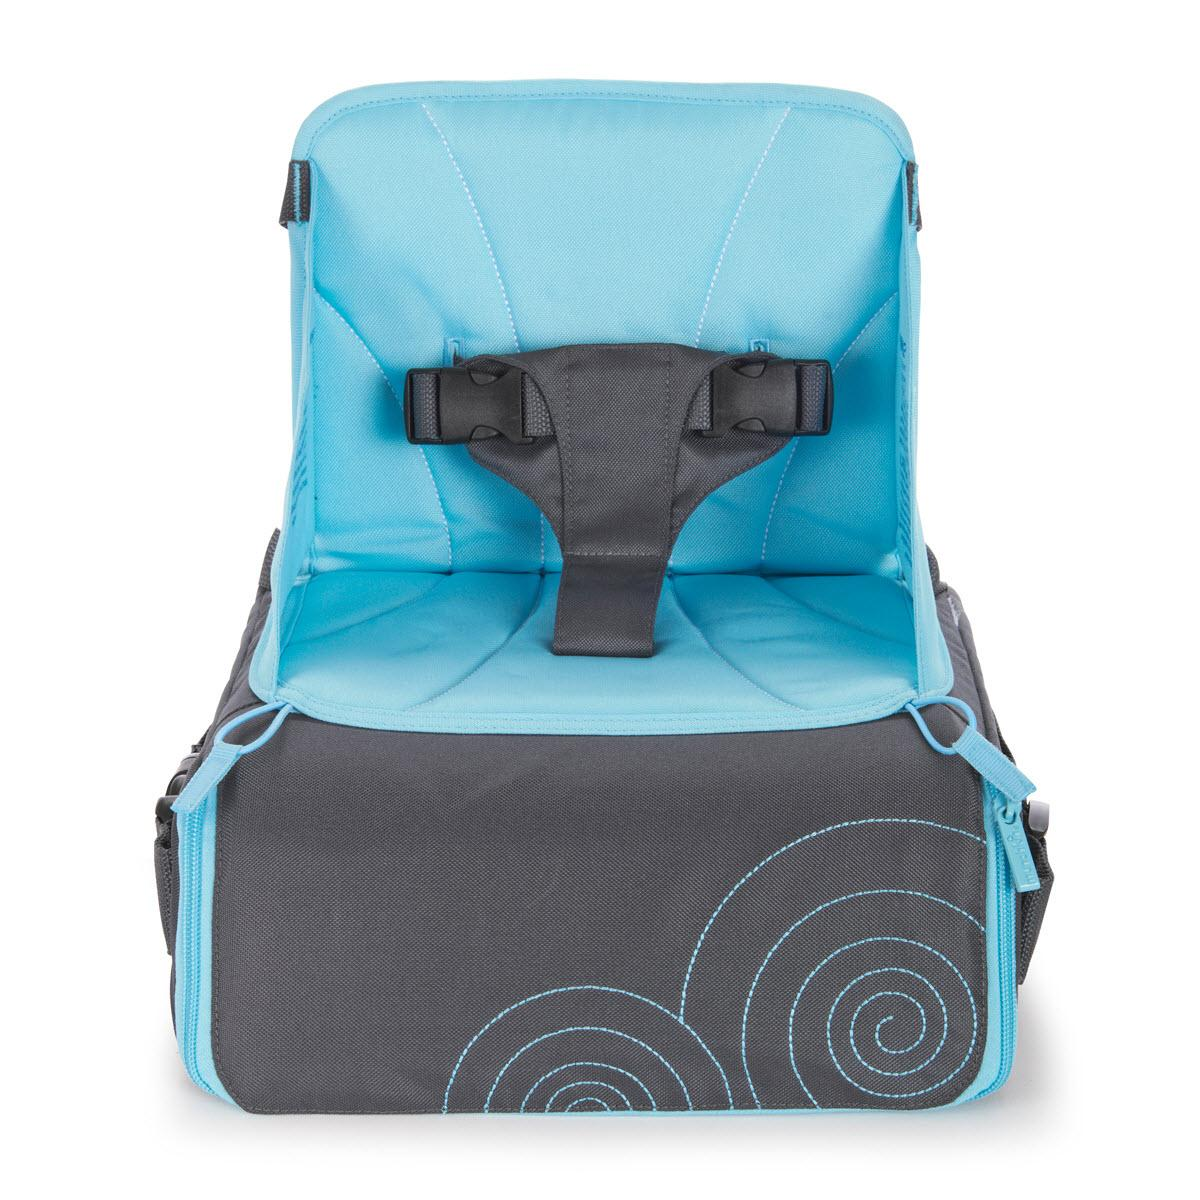 Review Brica Travel Booster Seat Brica